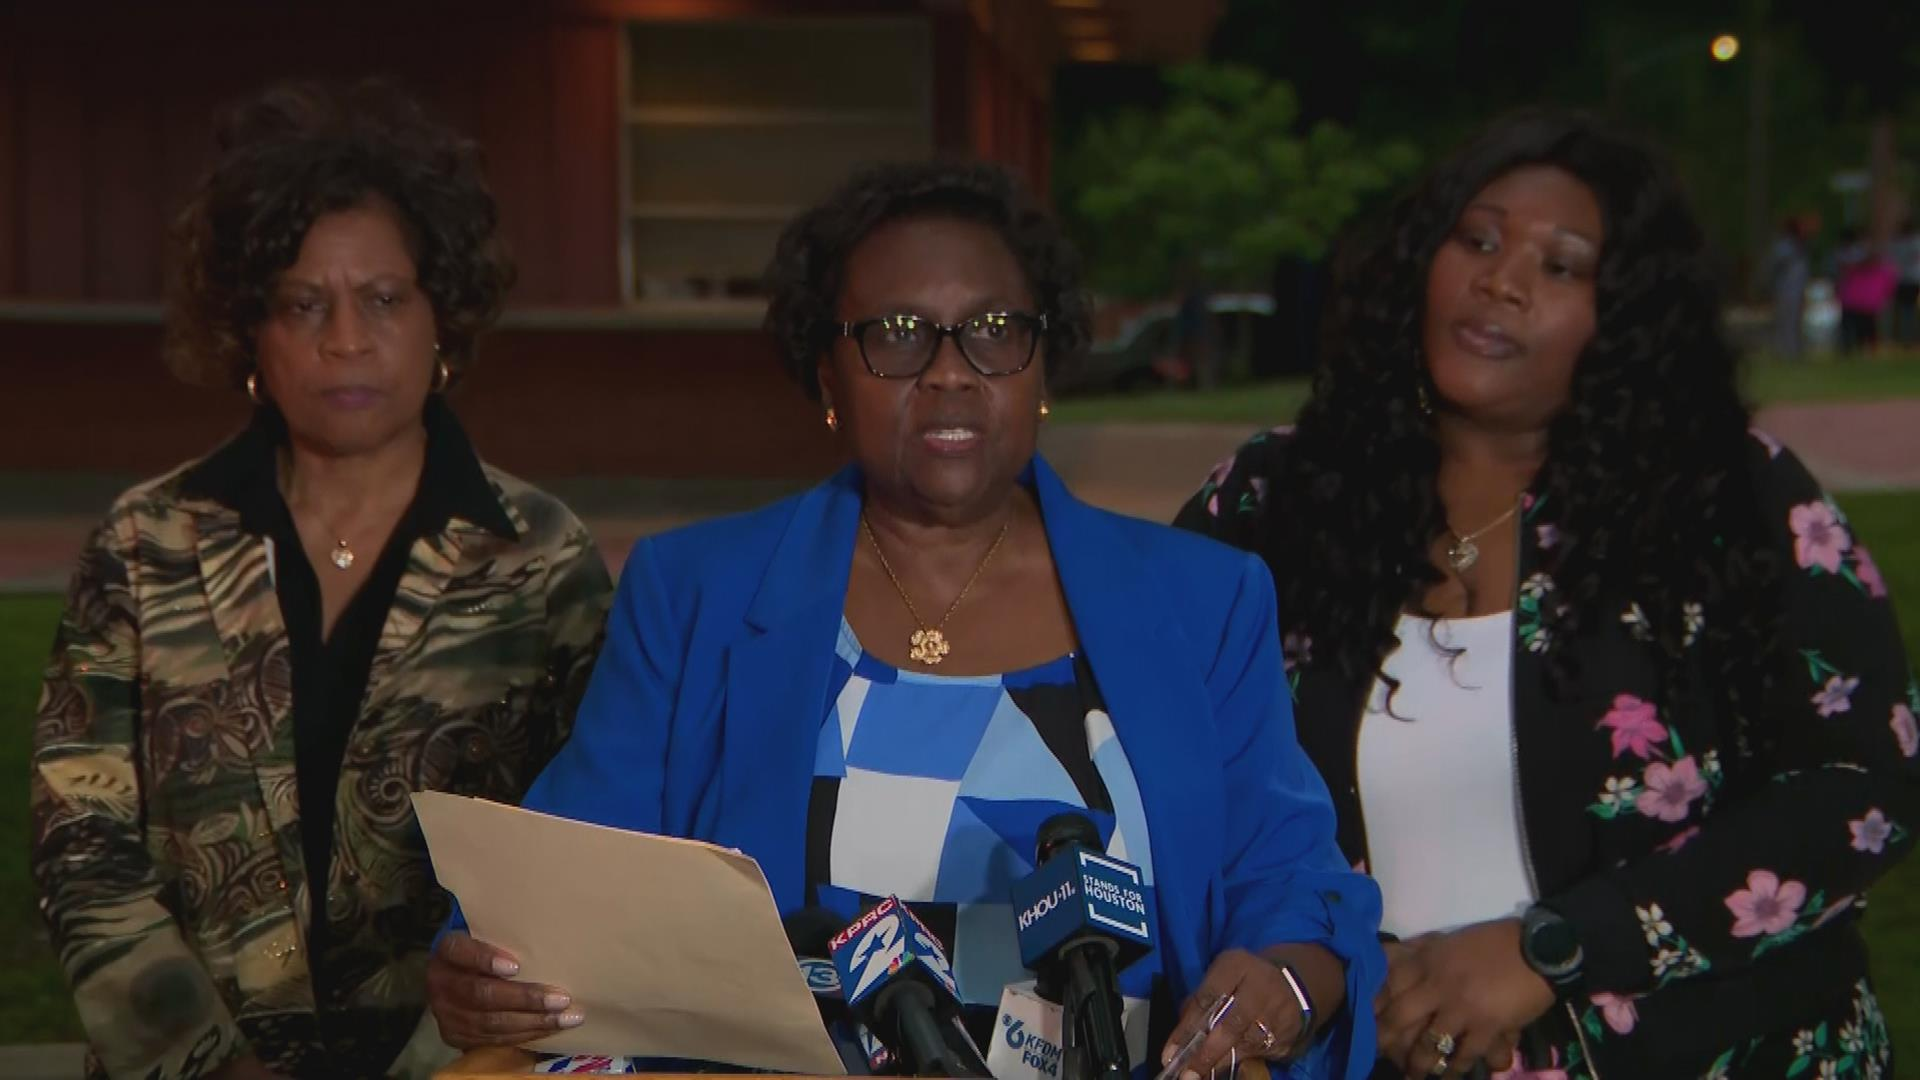 Family of James Byrd, Jr. speaks out after execution